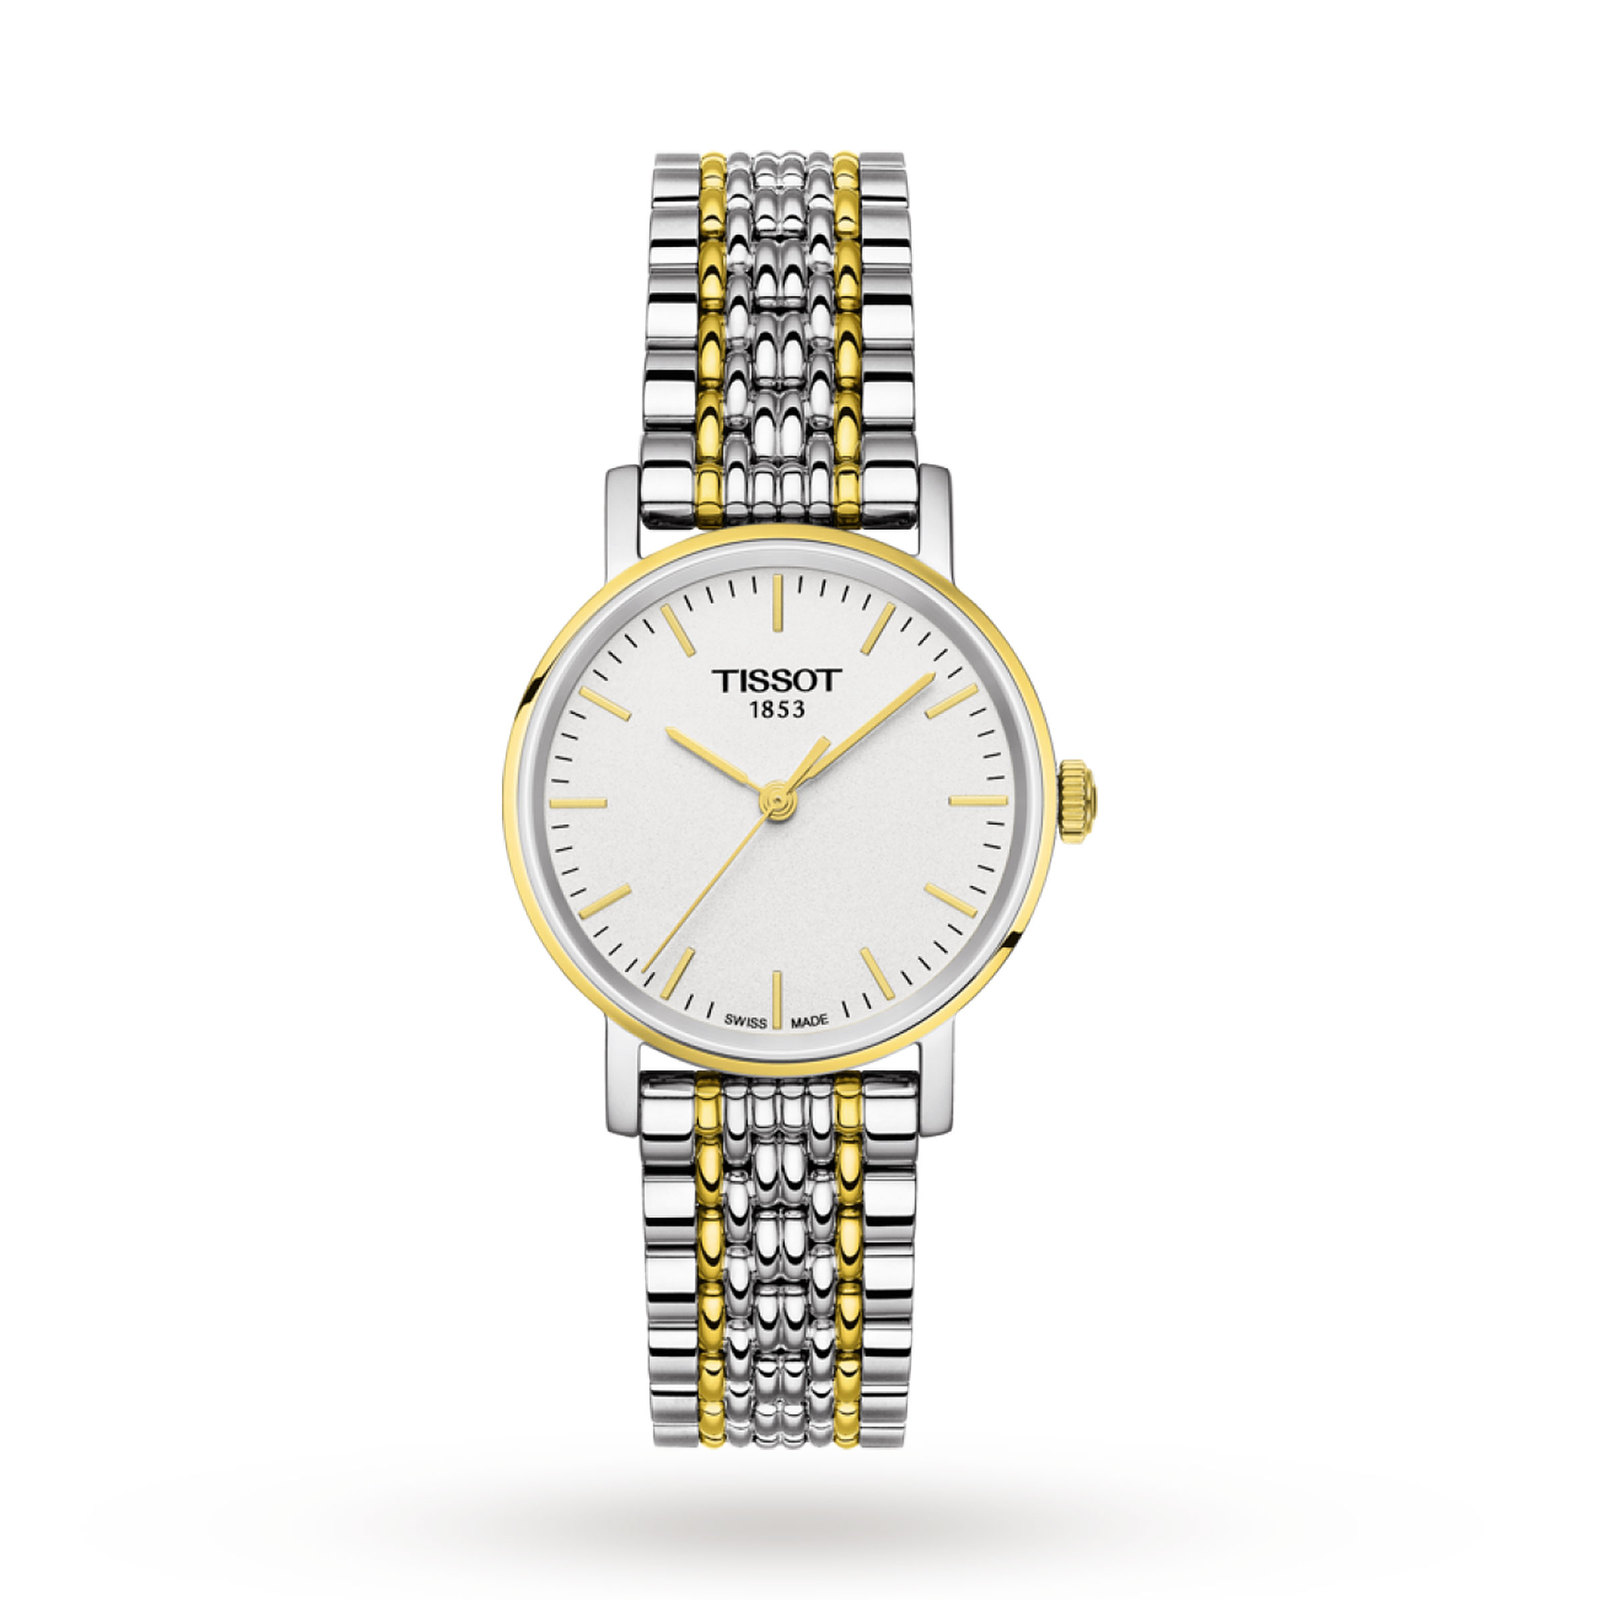 Tissot T-Trend Ladies Watch | Classic Watches